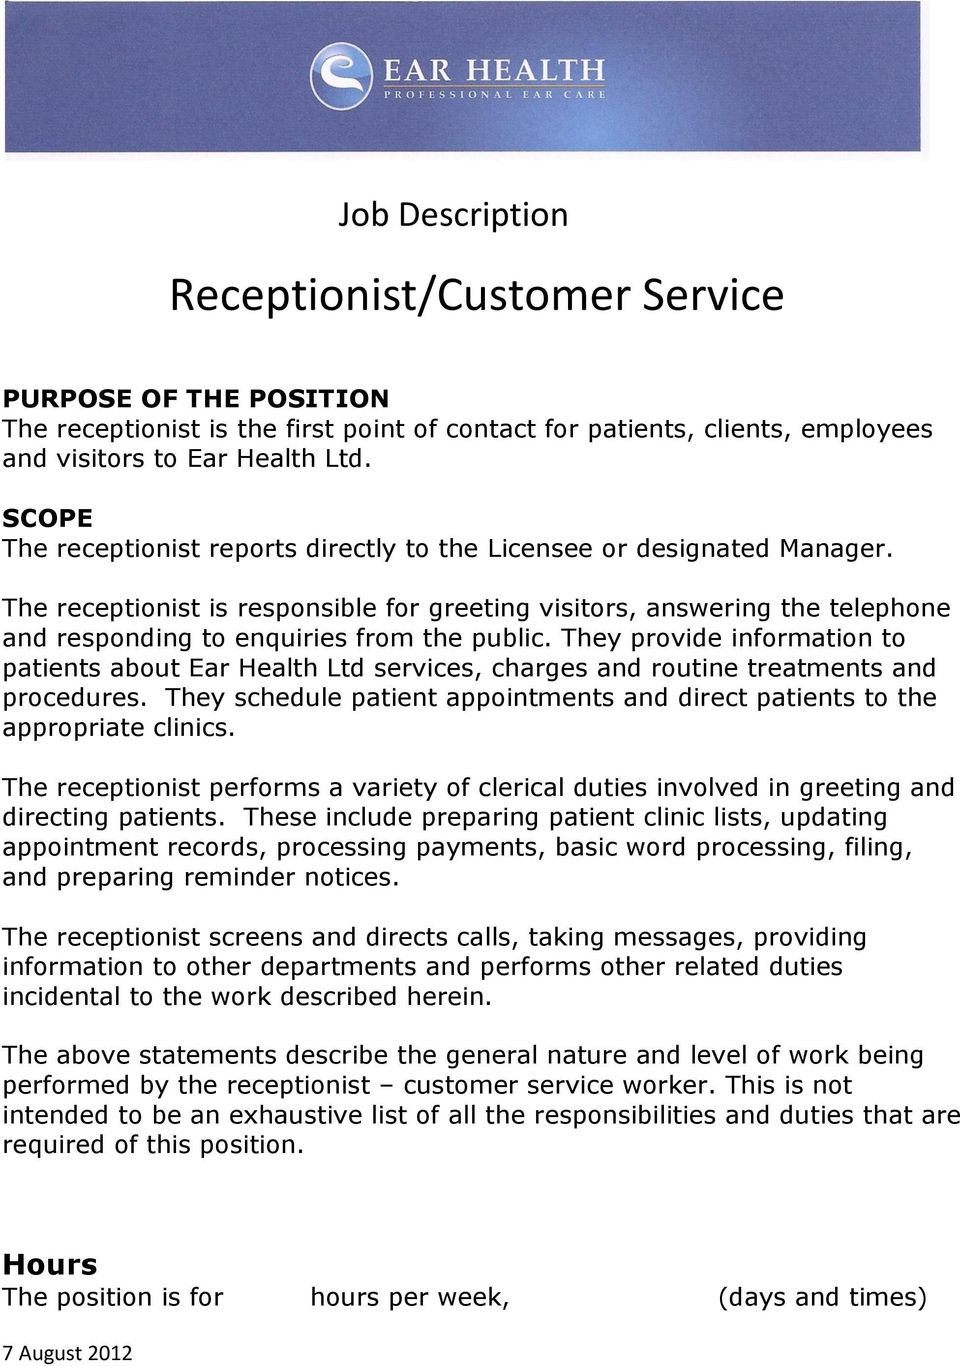 The receptionist is responsible for greeting visitors, answering the telephone and responding to enquiries from the public.